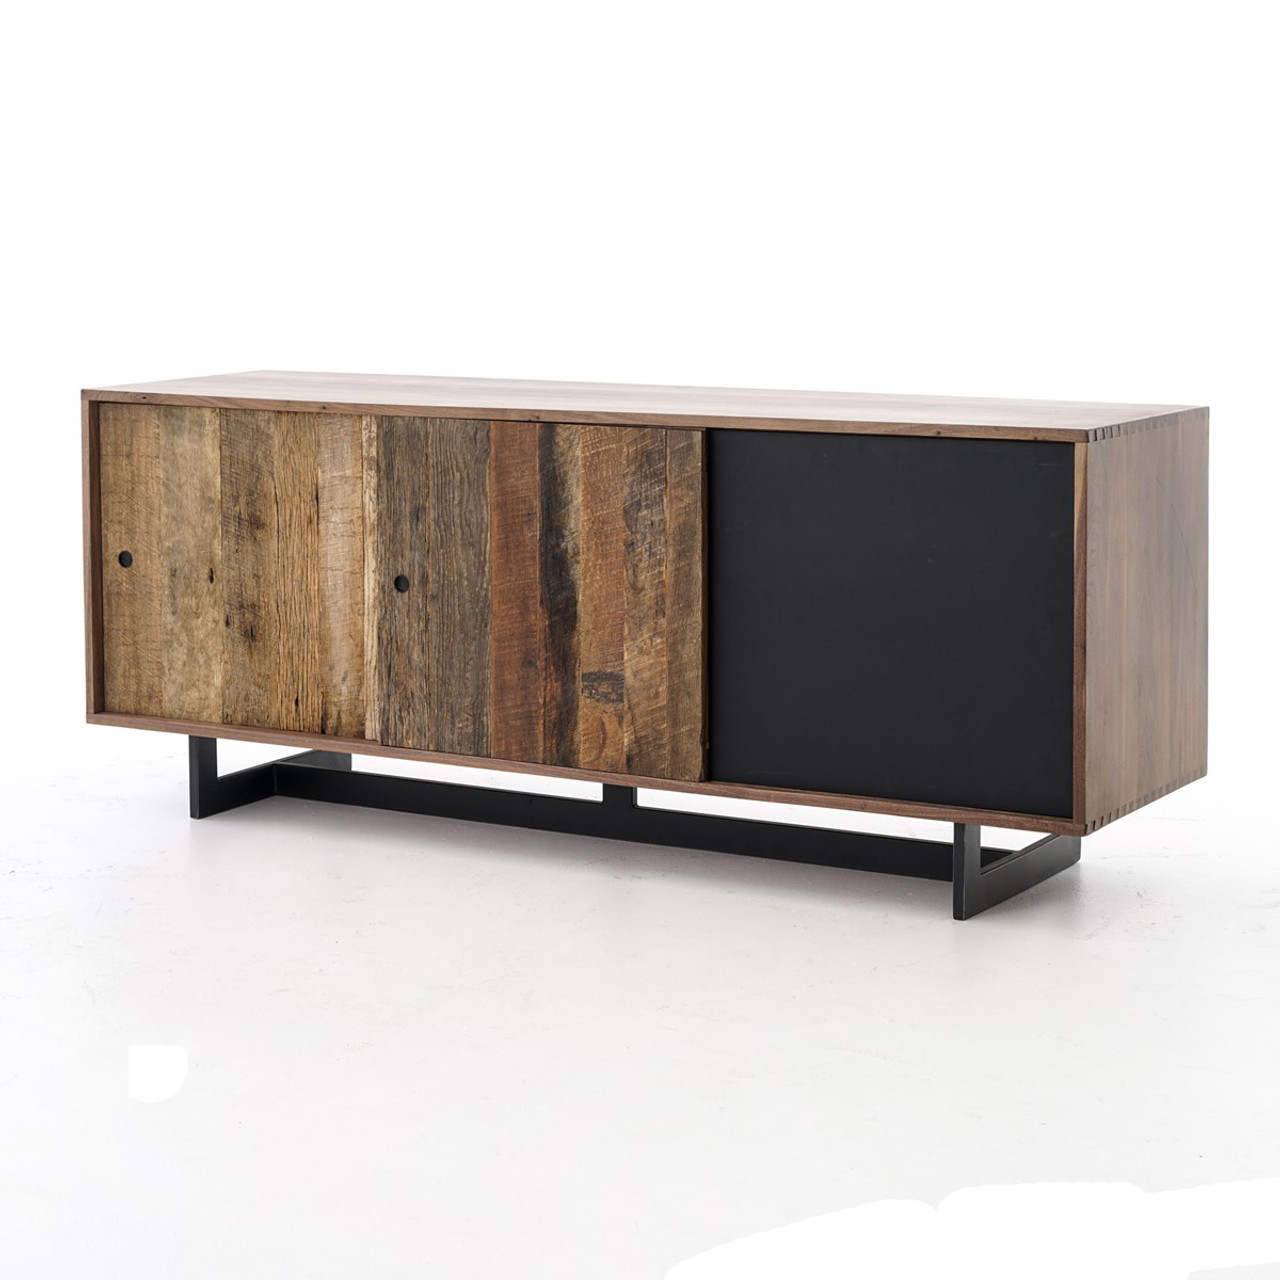 Anderson Industrial Rustic Oak Wood and Metal Media Console